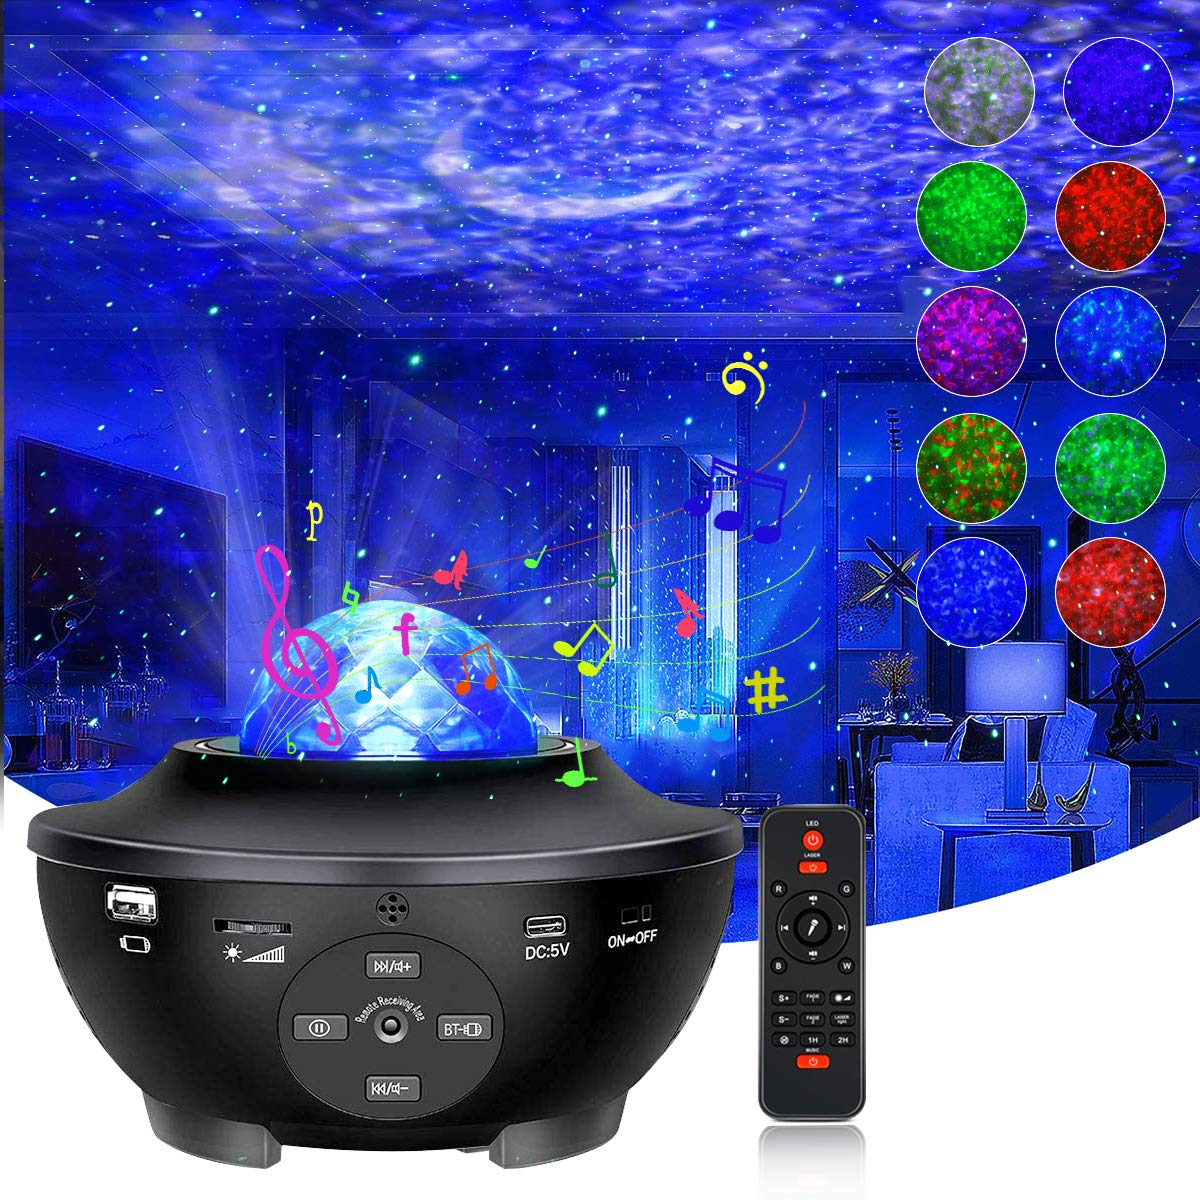 Star Projector Night Light, Galaxy Projector with Remote Control LED Nebula Cloud Light Projector Music Speaker Ocean Wave Night Lights for Kids Adult Bedroom/Home Theatre Ambiance Decor